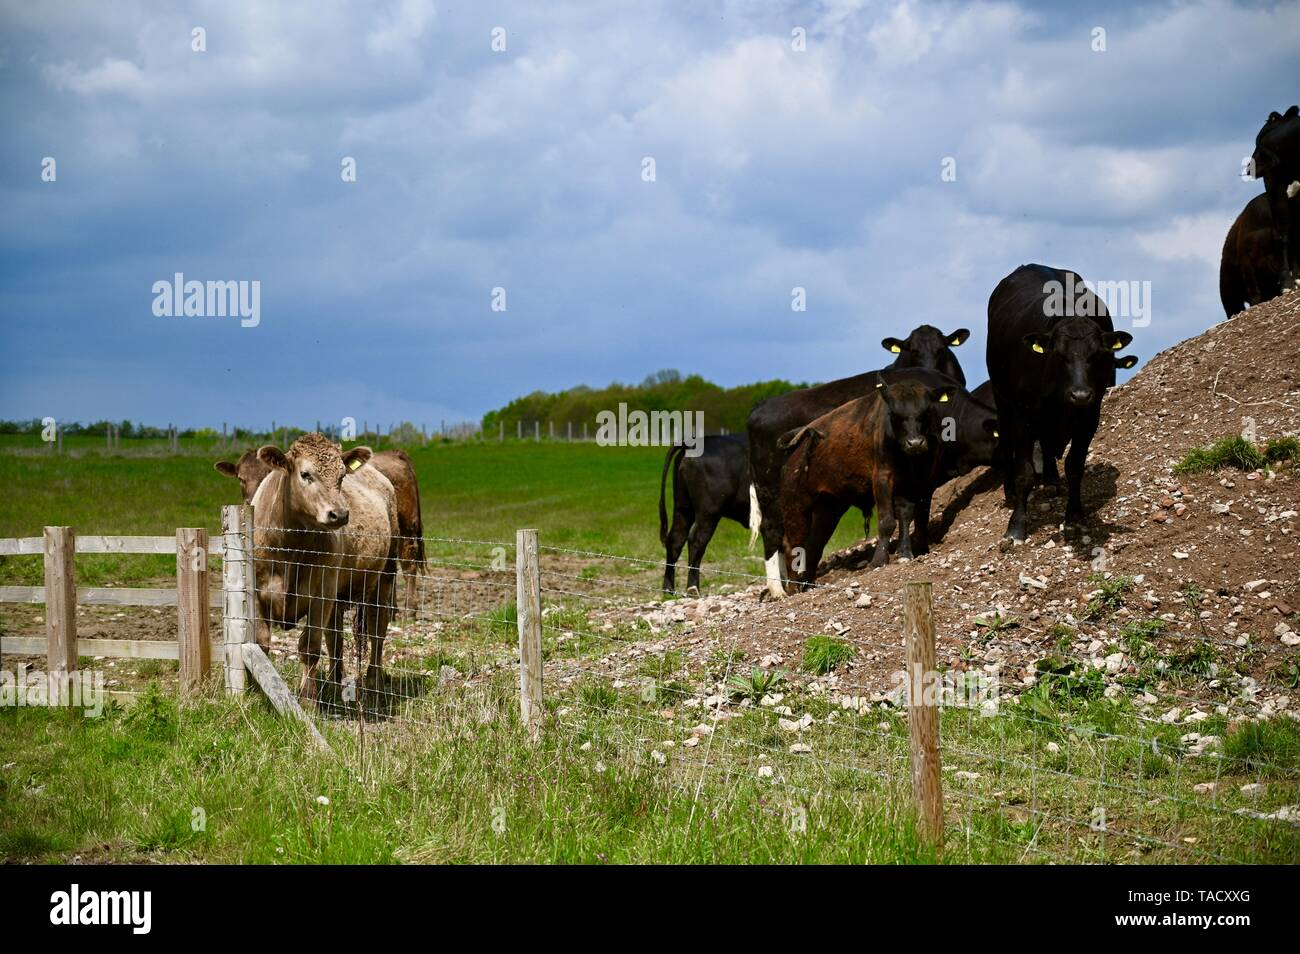 Herd or group of cows stood in a hillside in dramatic stance, hints of power and isolation. - Stock Image